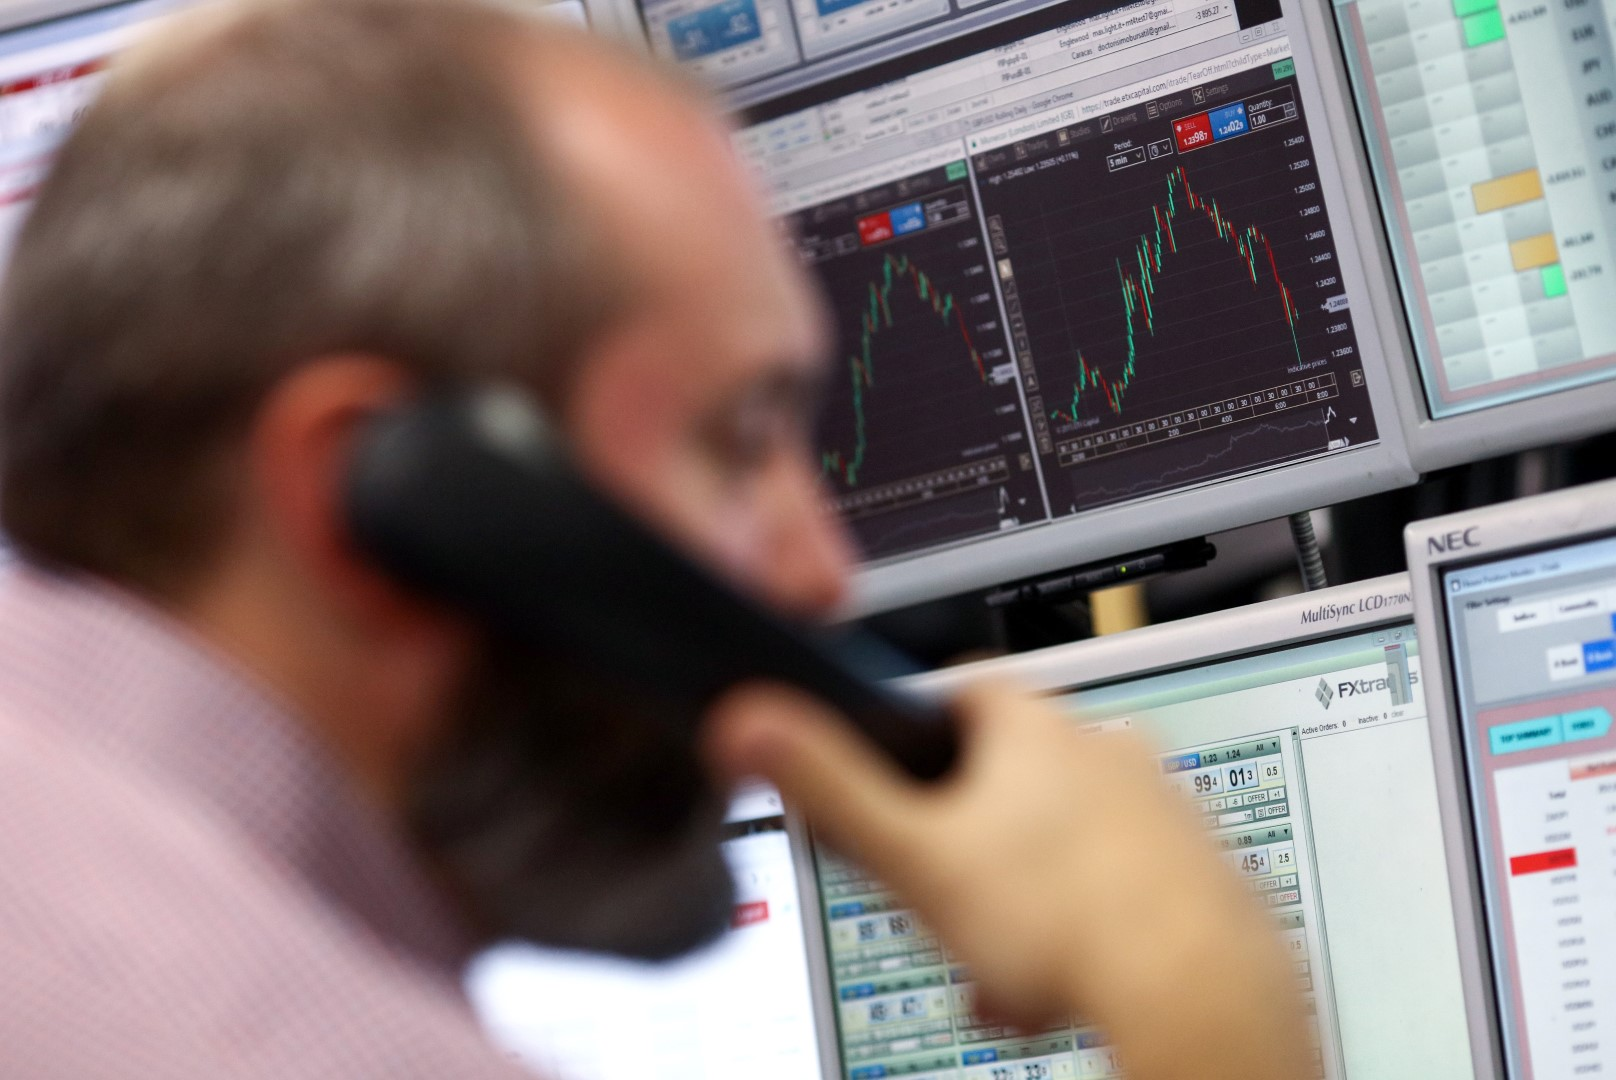 A trader speaks on a fixed line telephone as he monitors financial data on computer screens on the trading floor at ETX Capital, a broker of contracts-for-difference in London, U.K., on Wednesday, Nov. 9, 2016. Donald Trump was elected the 45th president of the United States in a stunning repudiation of the political establishment that jolted financial markets and likely will reorder the nation's priorities and fundamentally alter America's relationship with the world. Photographer: Chris Ratcliffe/Bloomberg